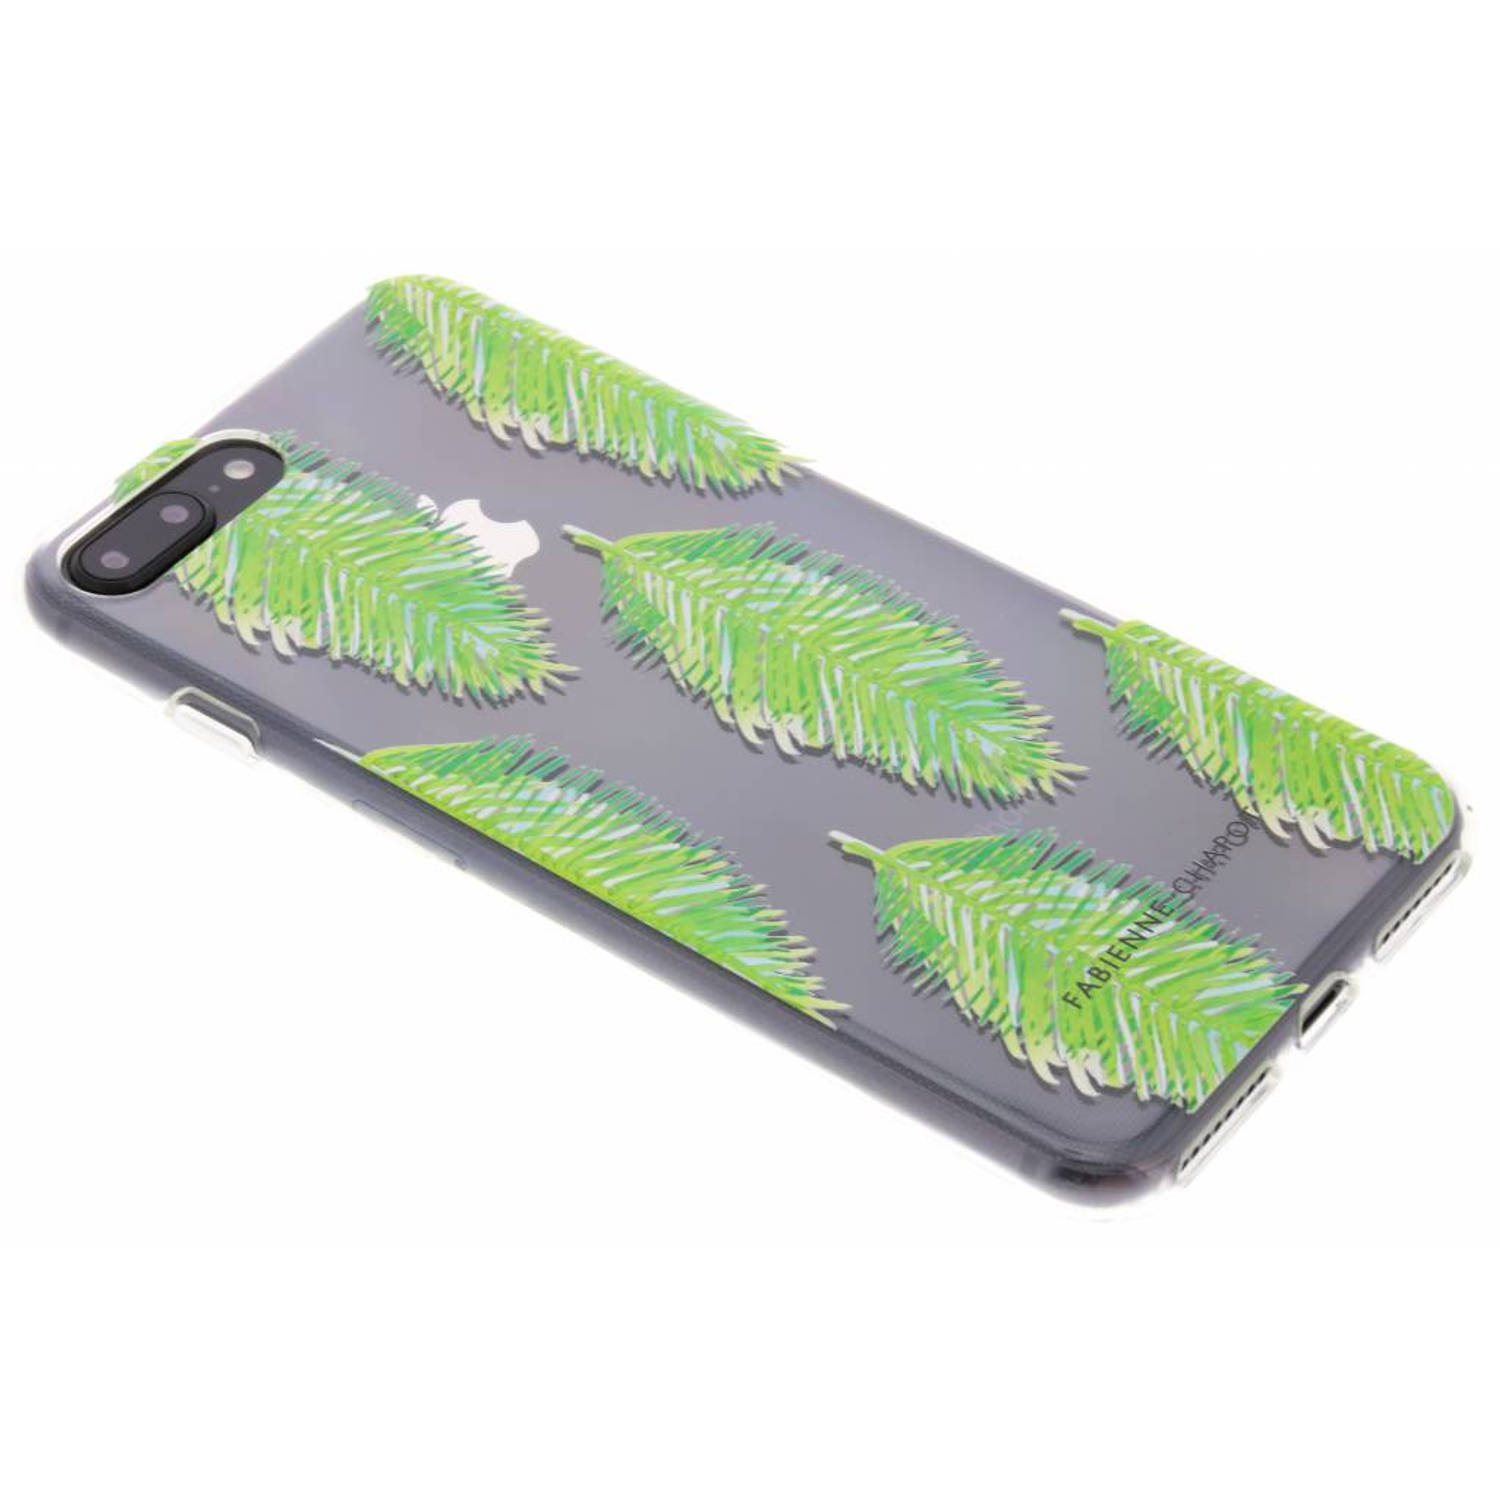 Blue Lagoon Softcase voor de iPhone 8 Plus / 7 Plus